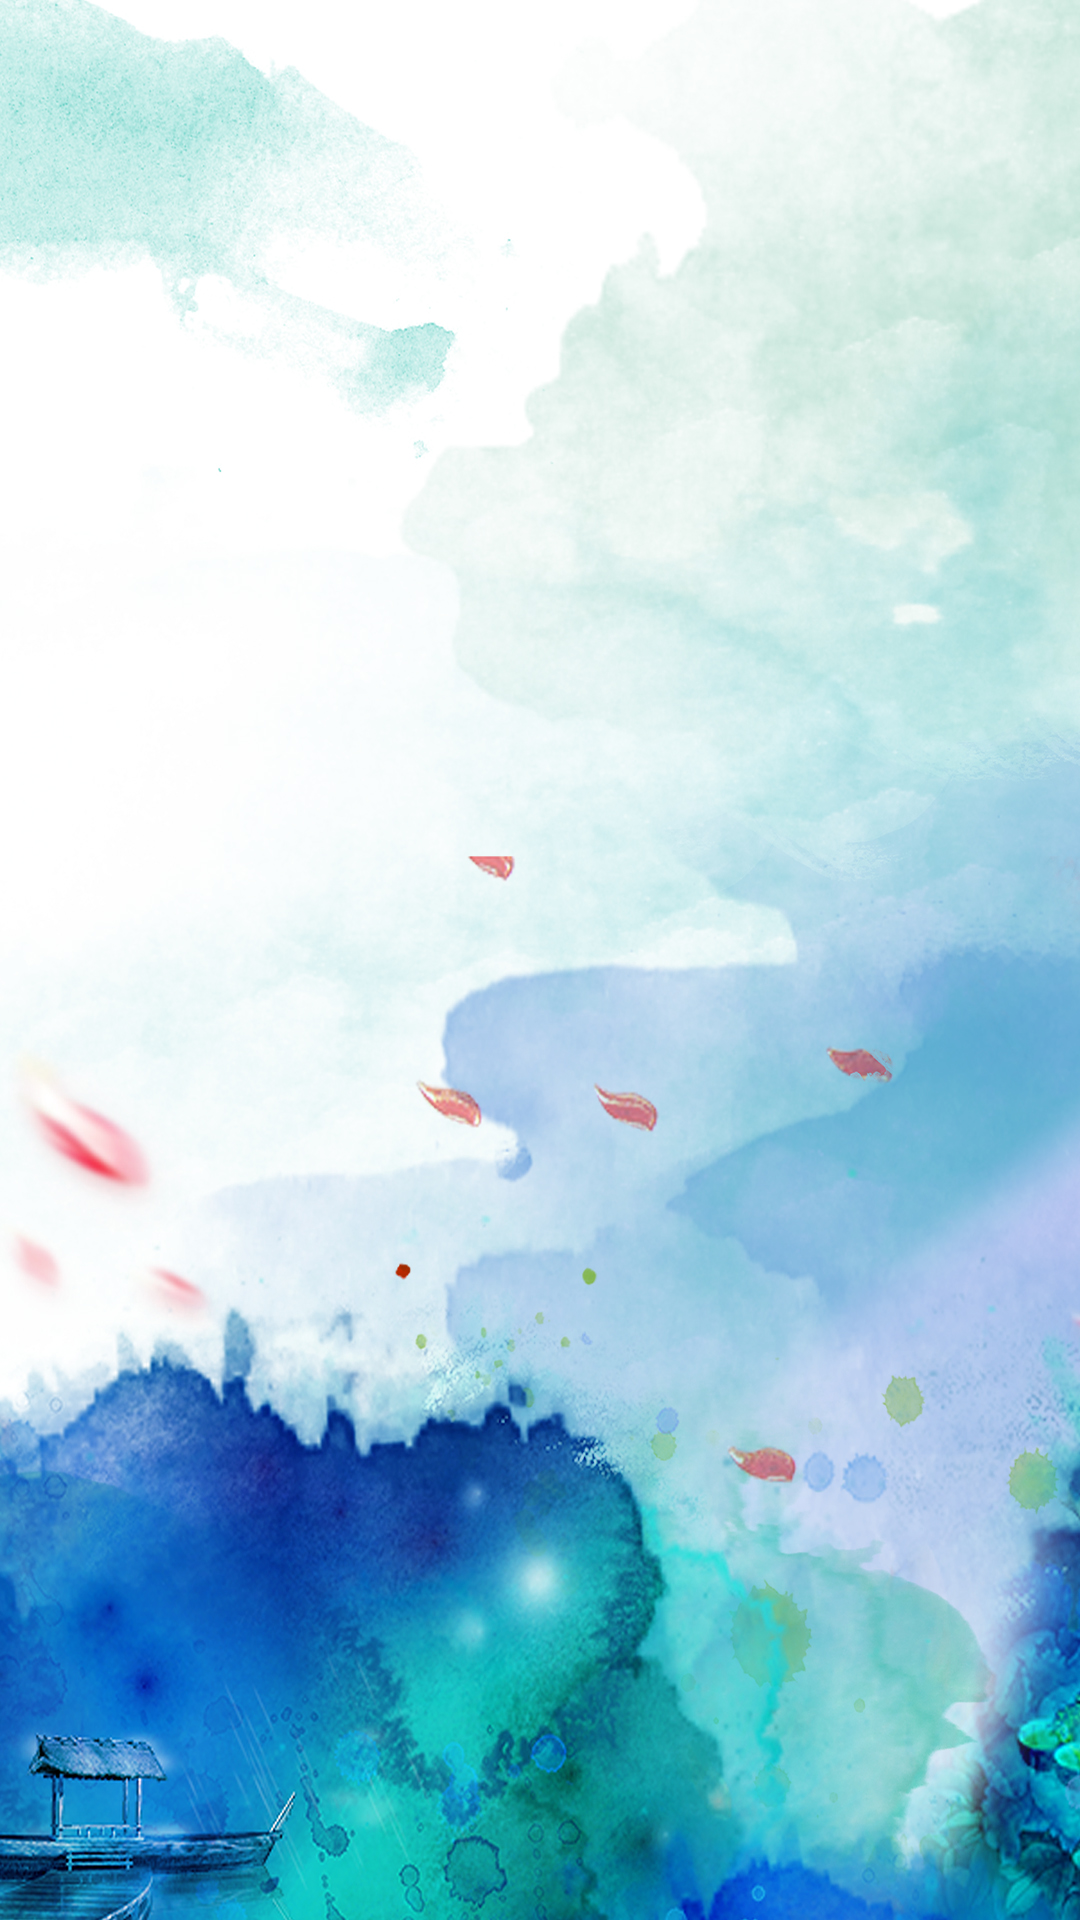 watercolor abstract creative background  dancing  petals  boat background image for free download